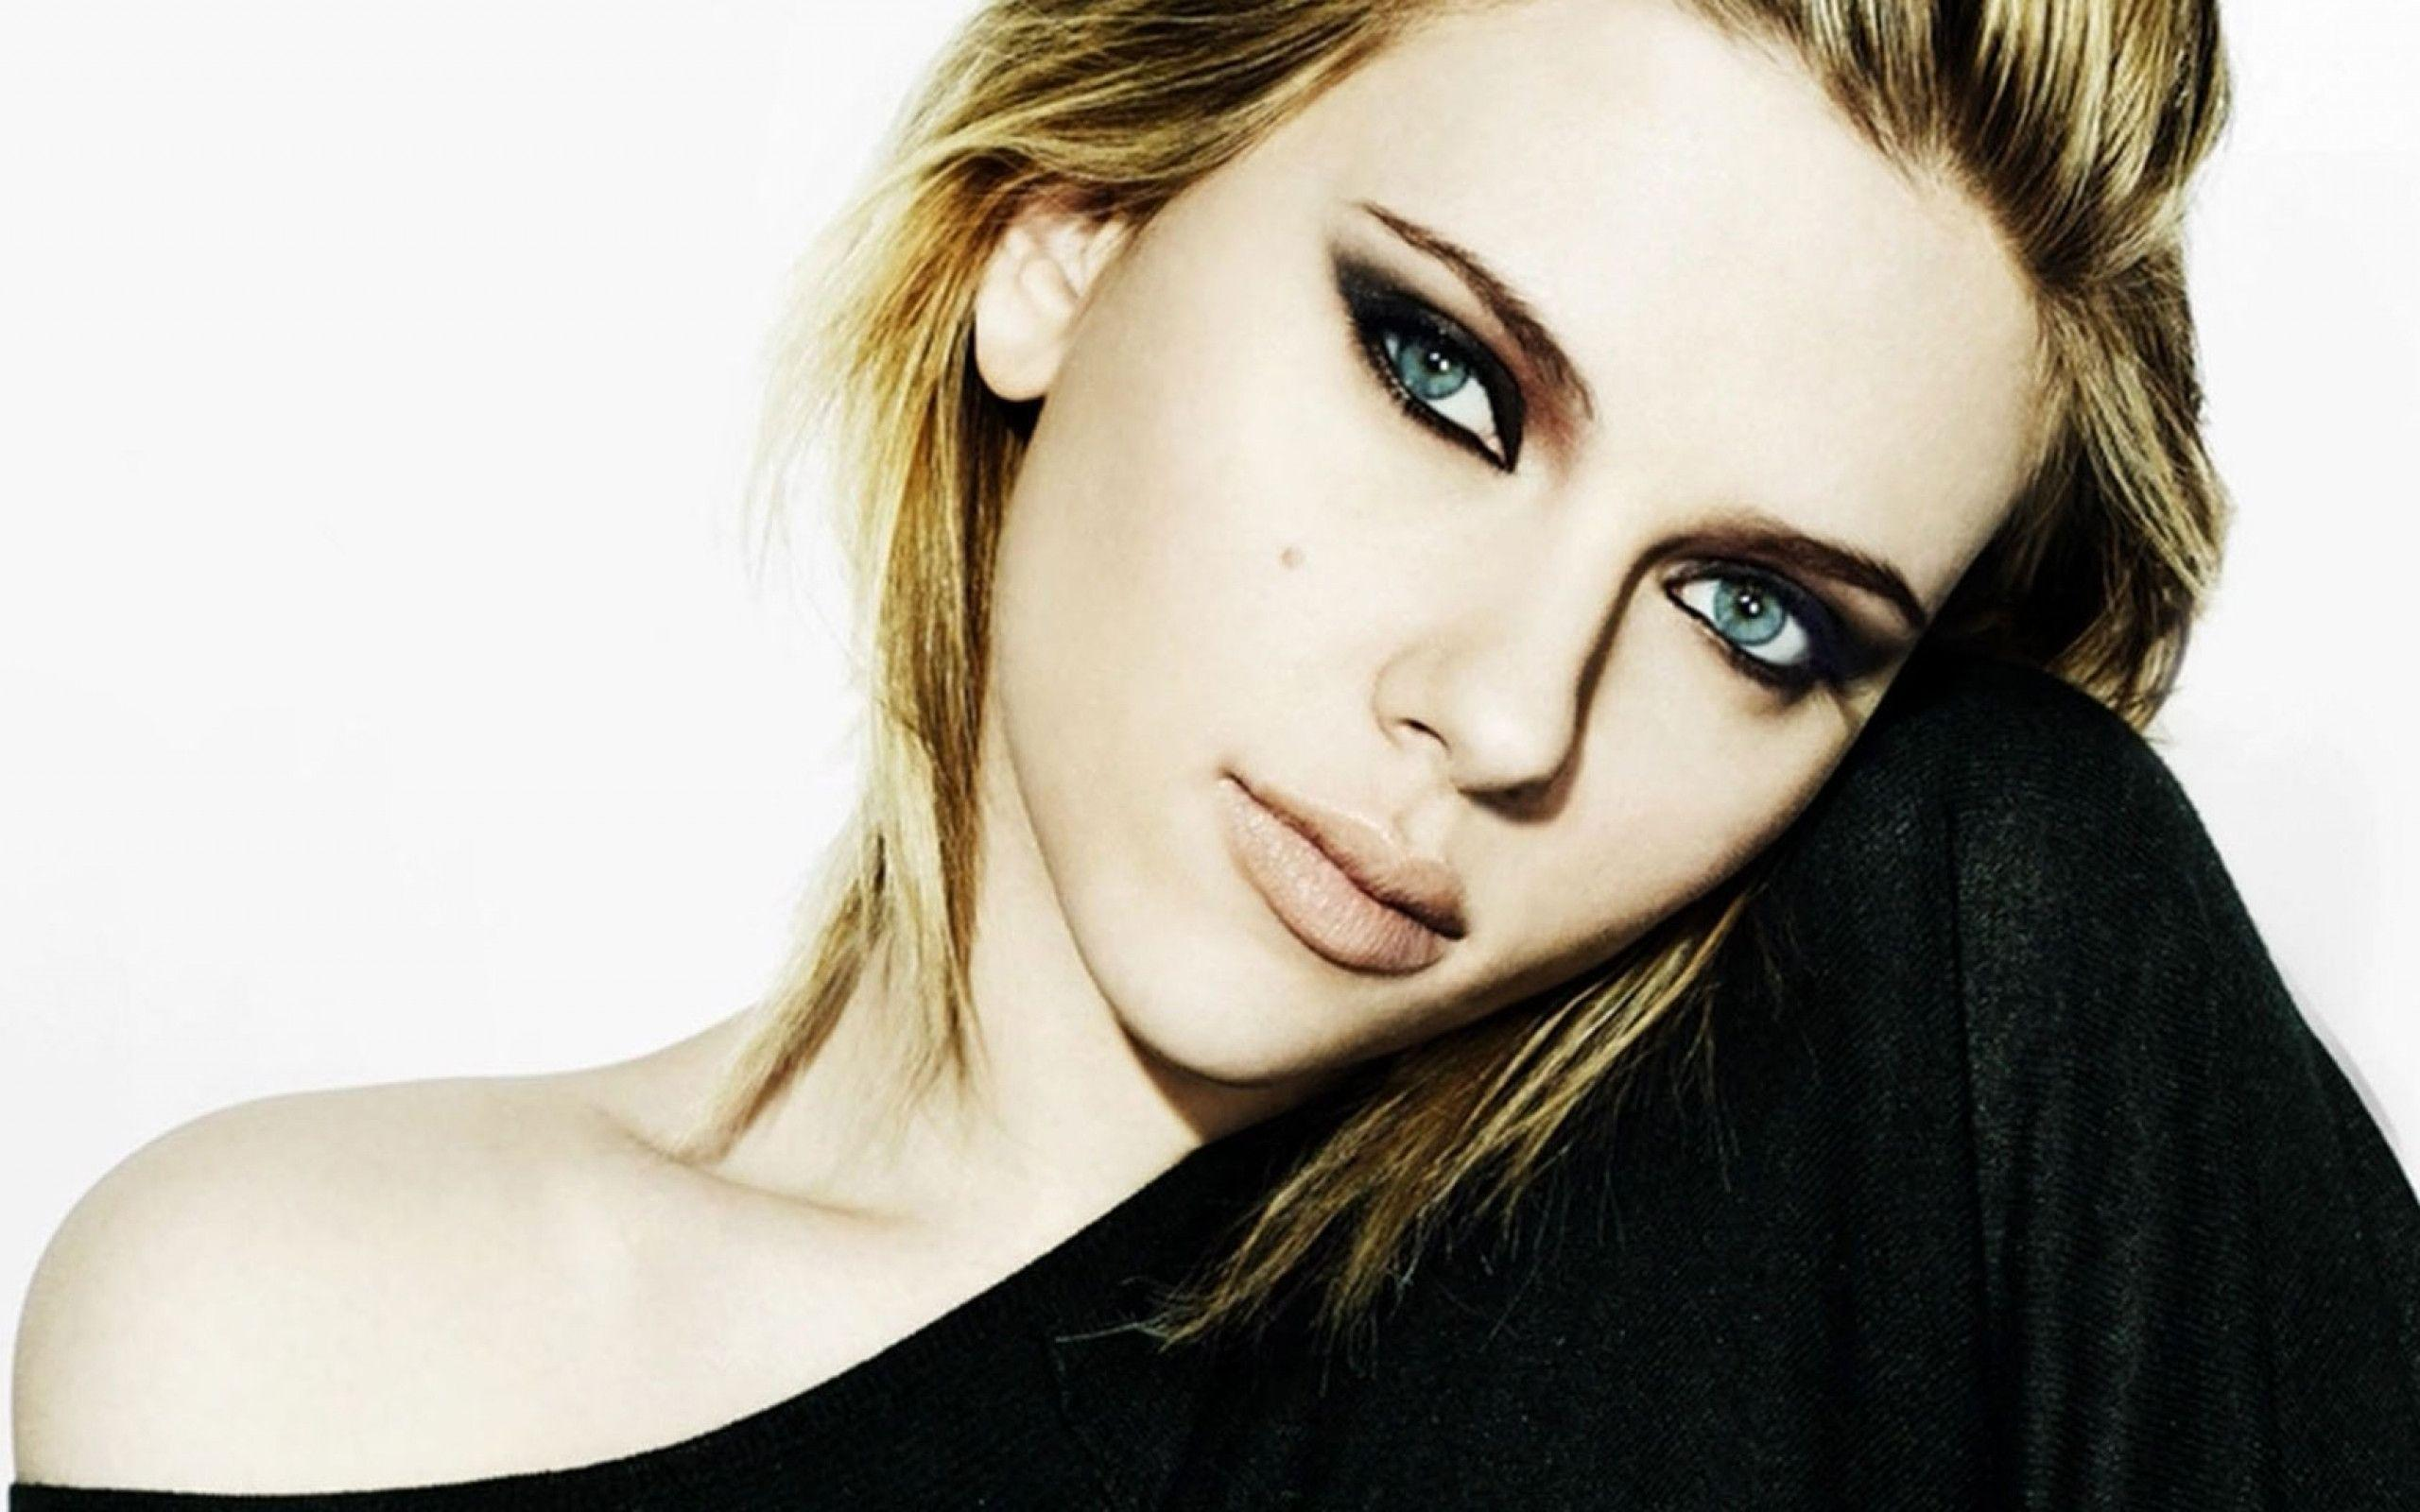 Scarlett Johansson Wallpaper 39752 in Celebrities F - Telusers.